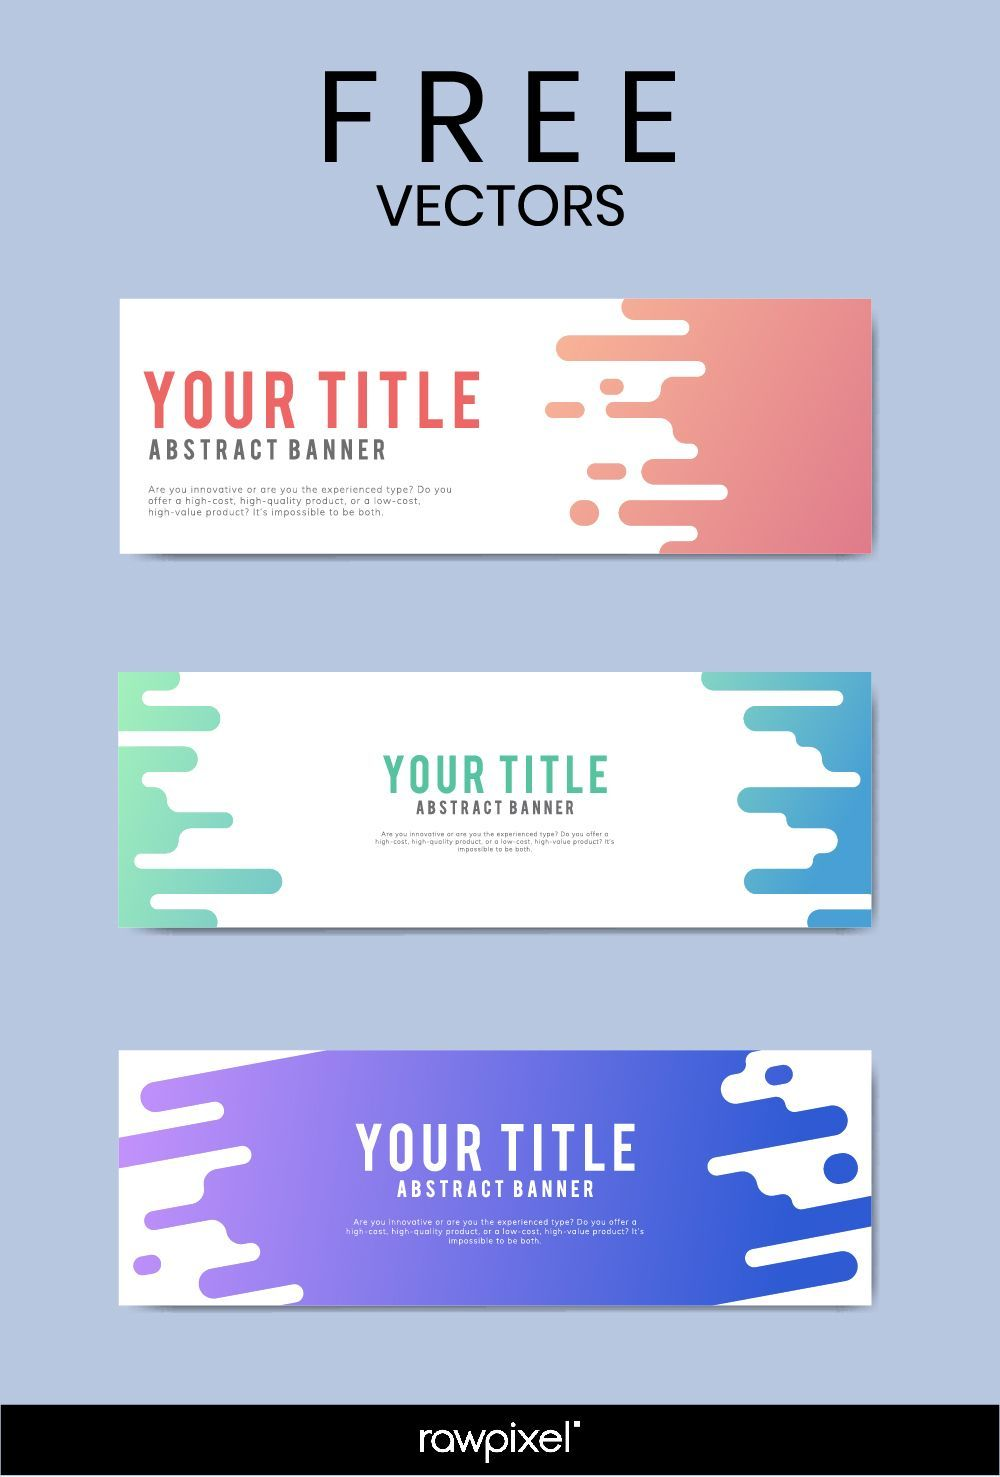 Download Free Modern Business Banner Templates At Rawpixel Inside Website Banner Templates Free Download Cumed Org Desain Banner Desain Web Brosur